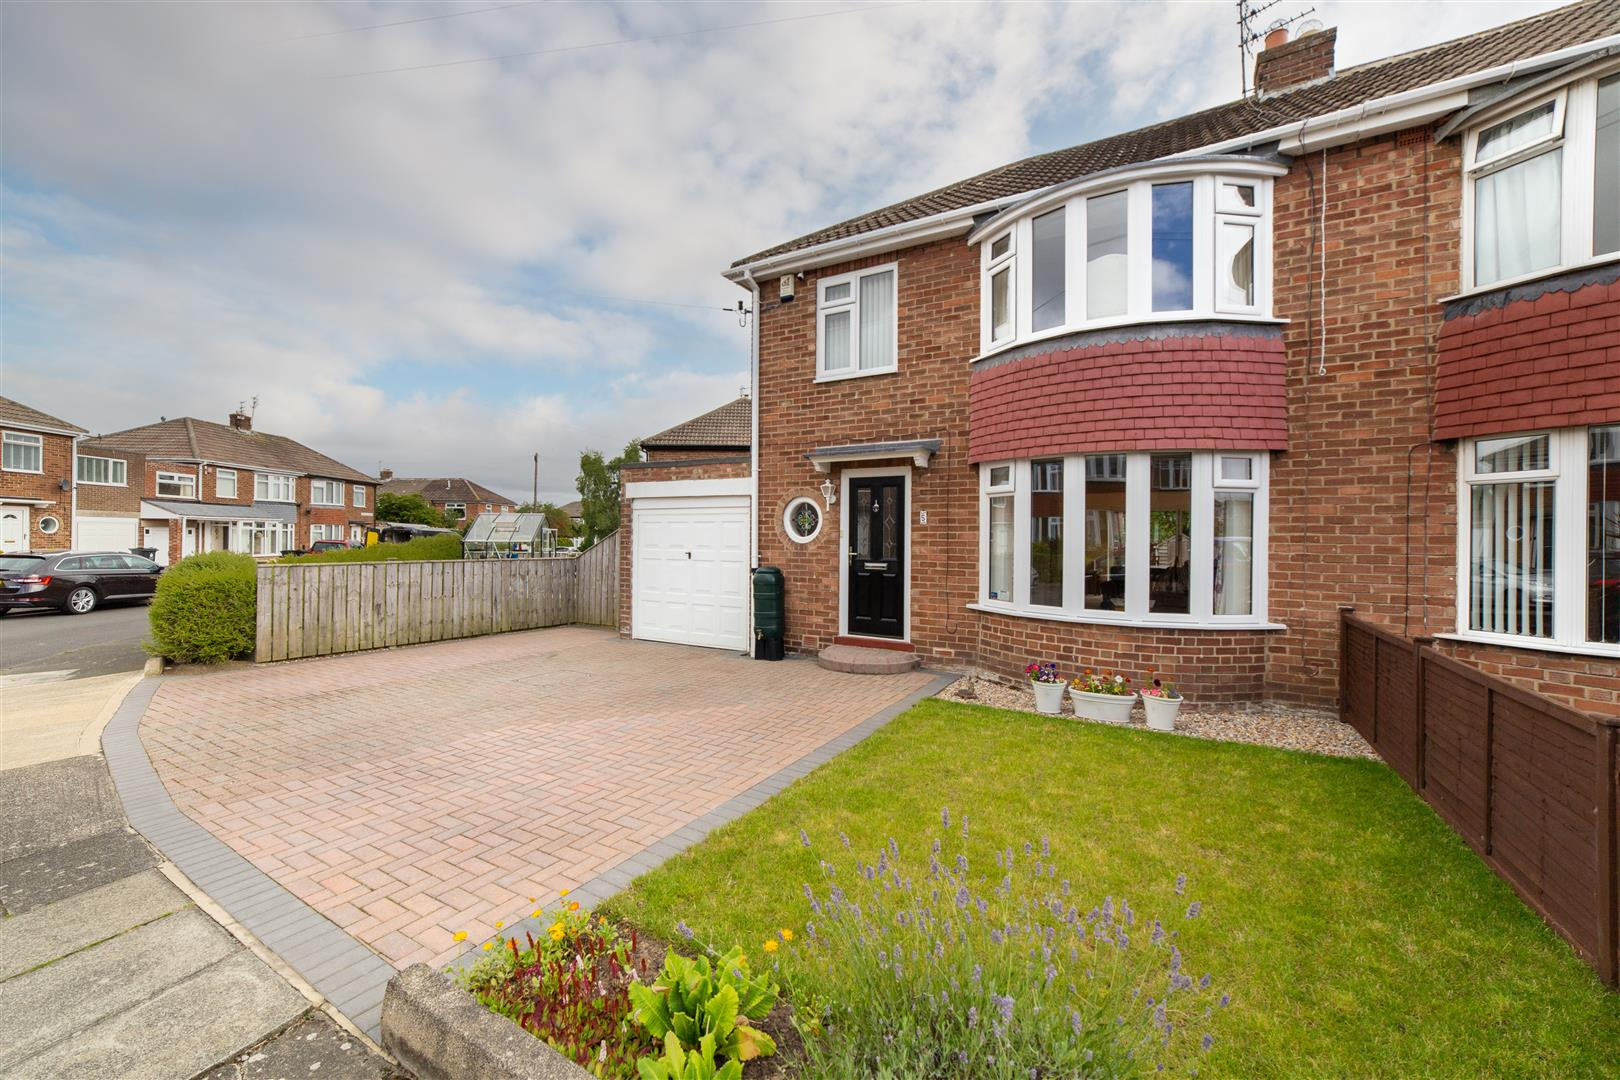 3 bed semi-detached house for sale in Limewood Grove, Newcastle Upon Tyne, NE13